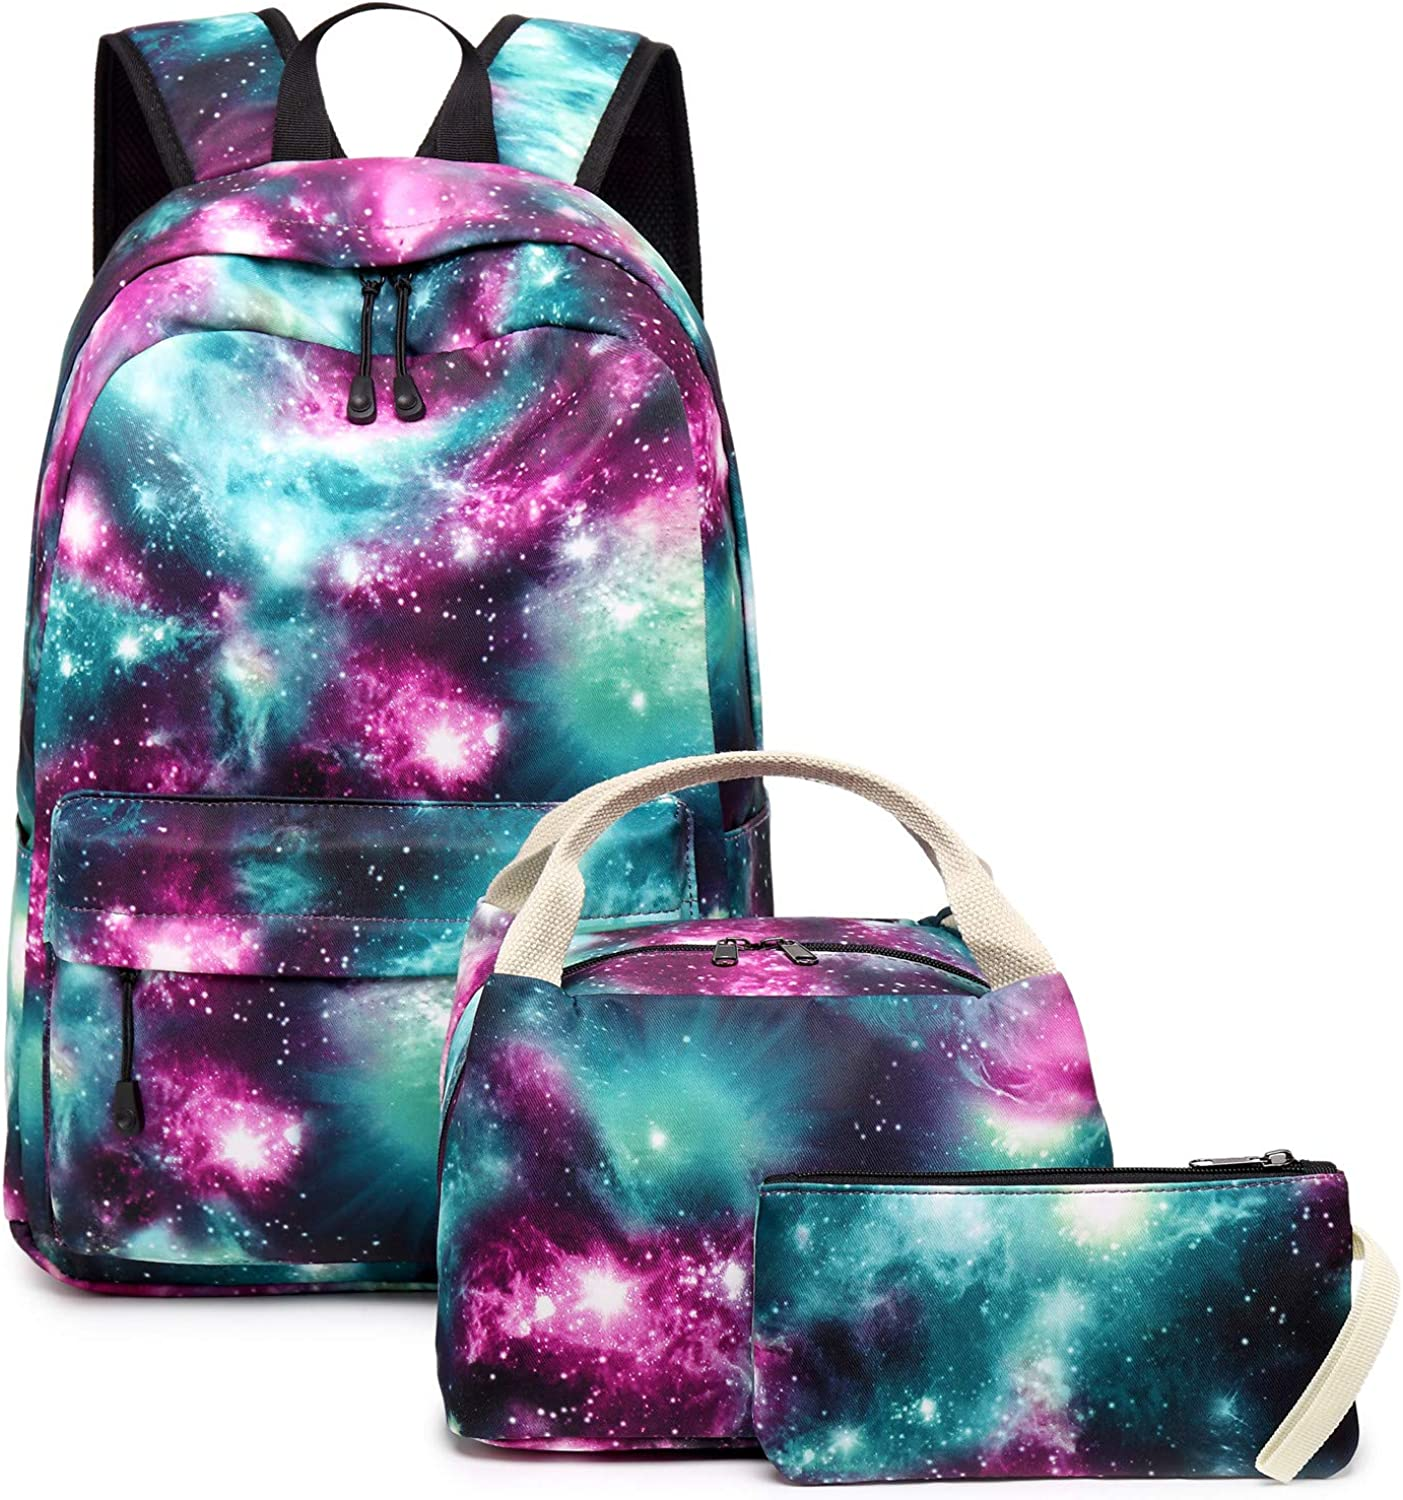 School Backpack Galaxy Teens Girls Boys Kids School Bags Bookbag with Laptop Sleeve